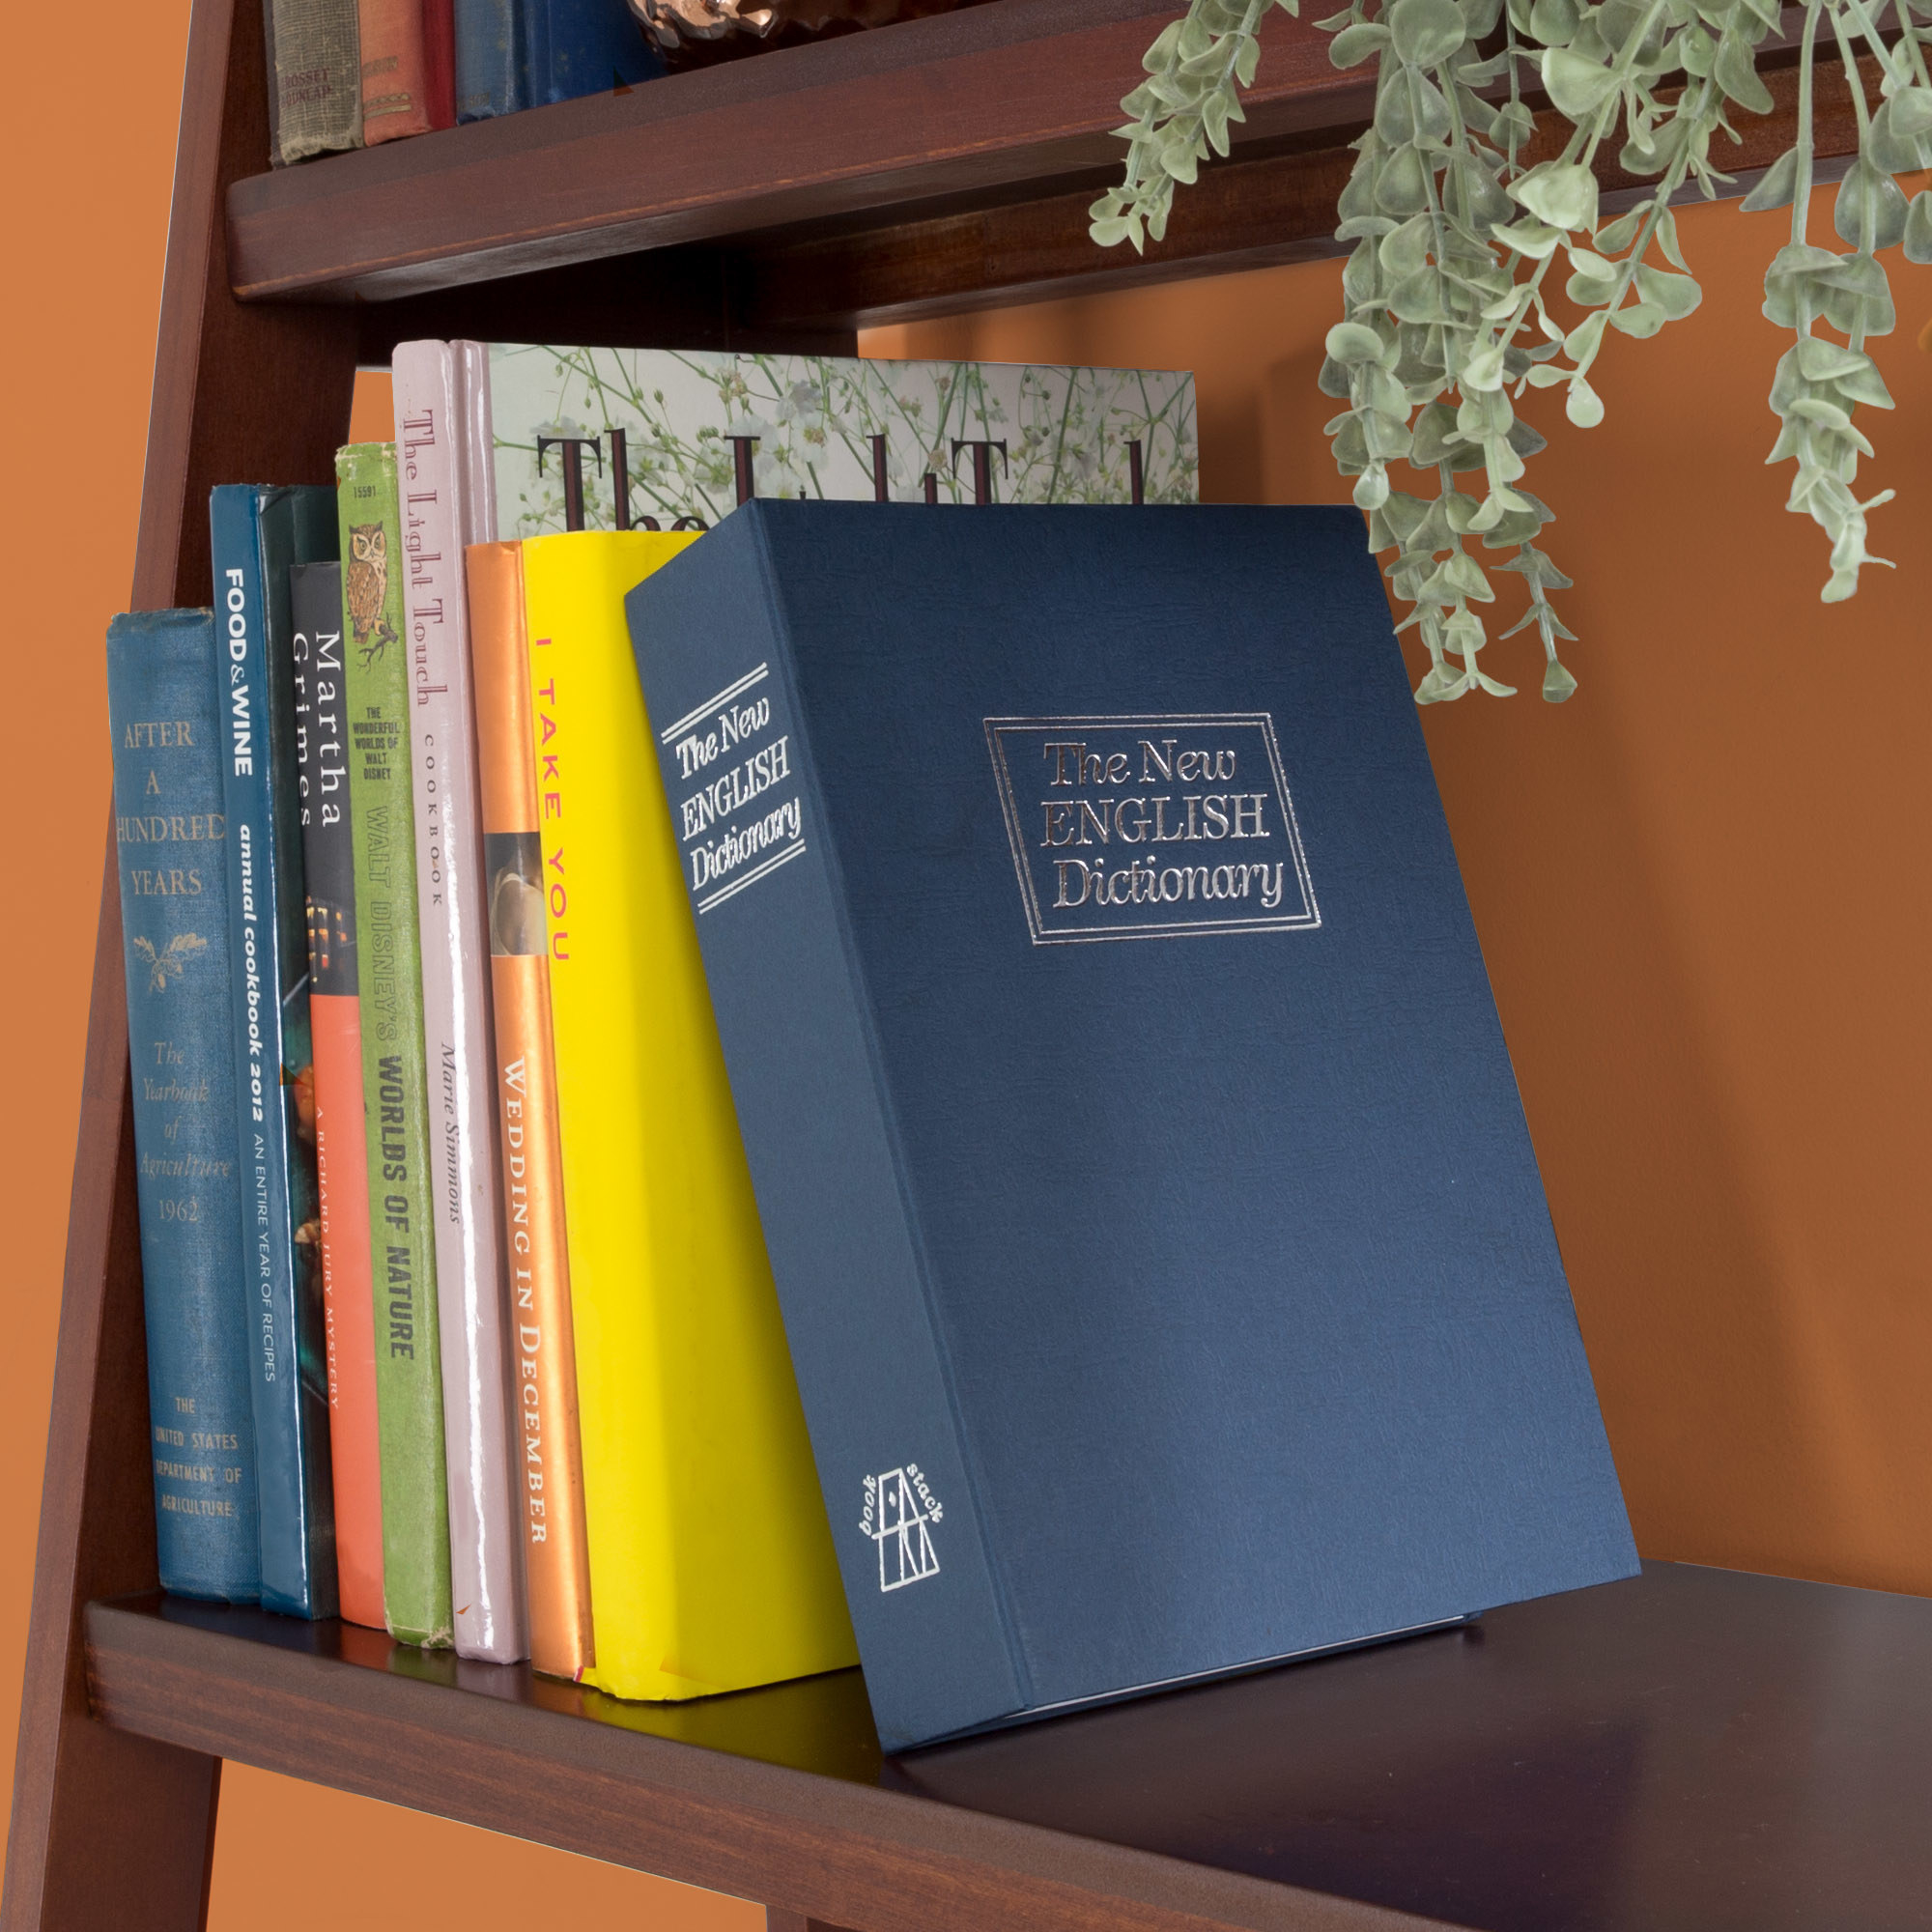 blue dictionary book safe on a bookshelf with other books